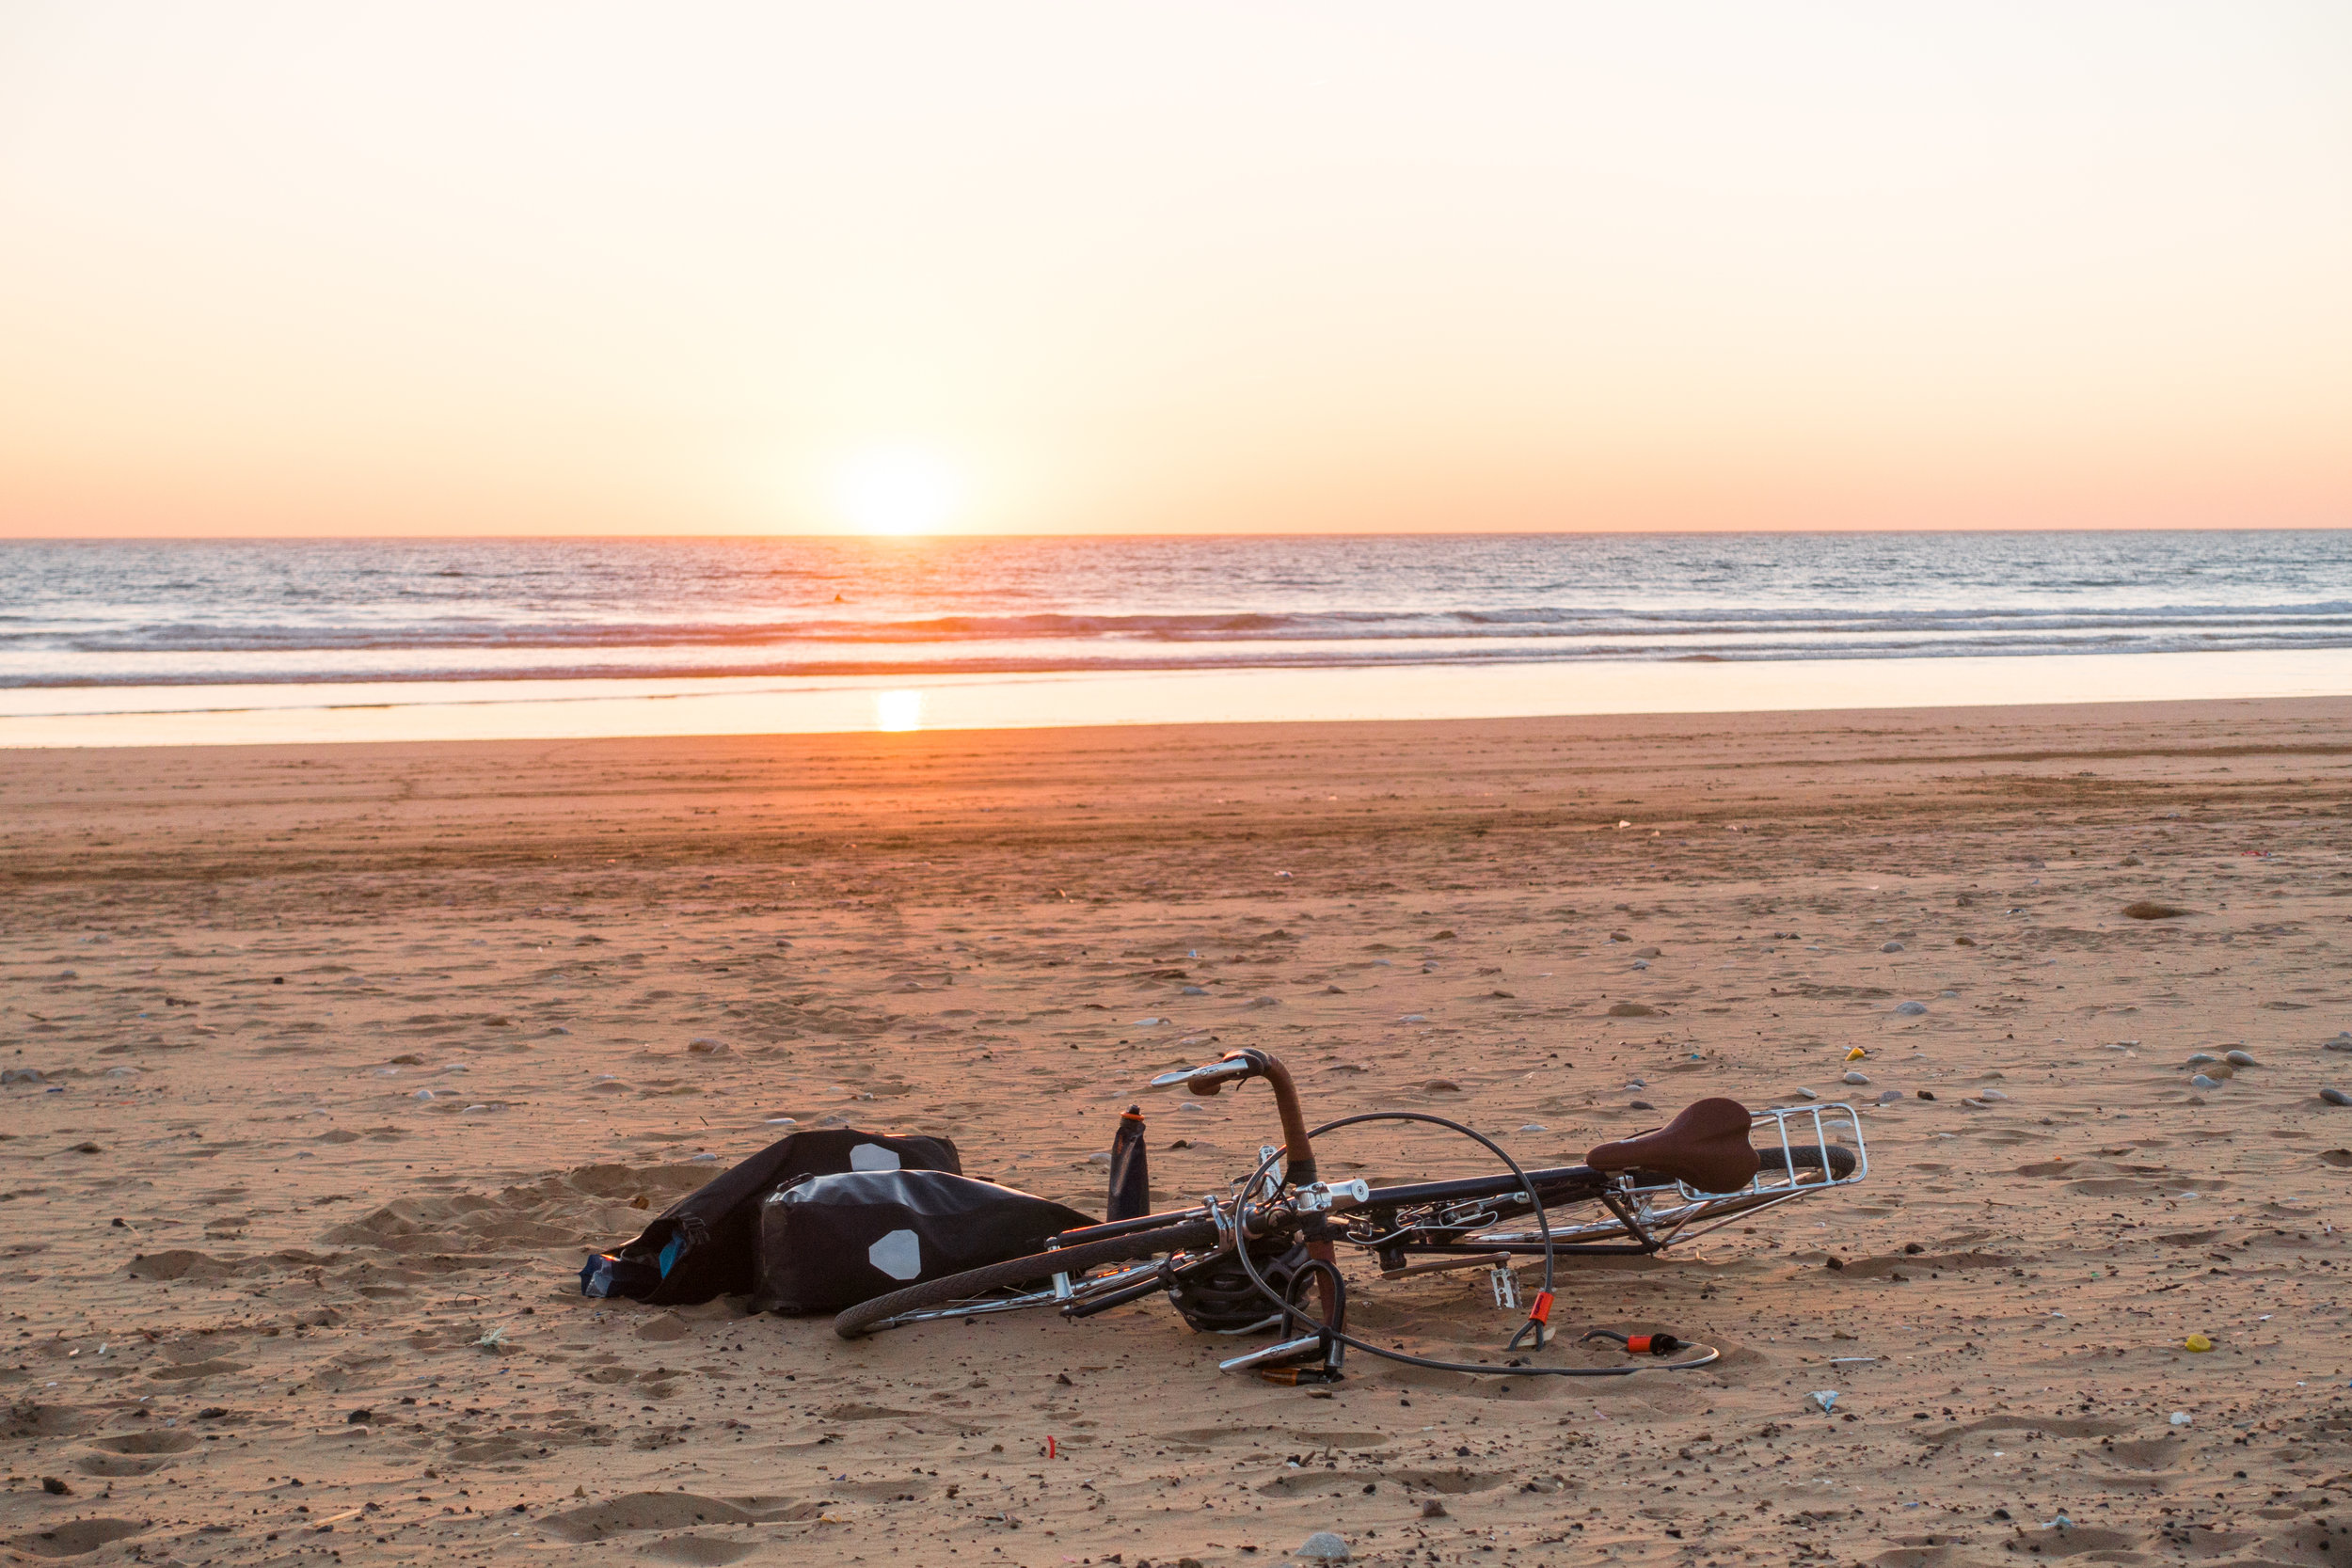 Simple living: cycling and camping on the shores of southern Morocco.